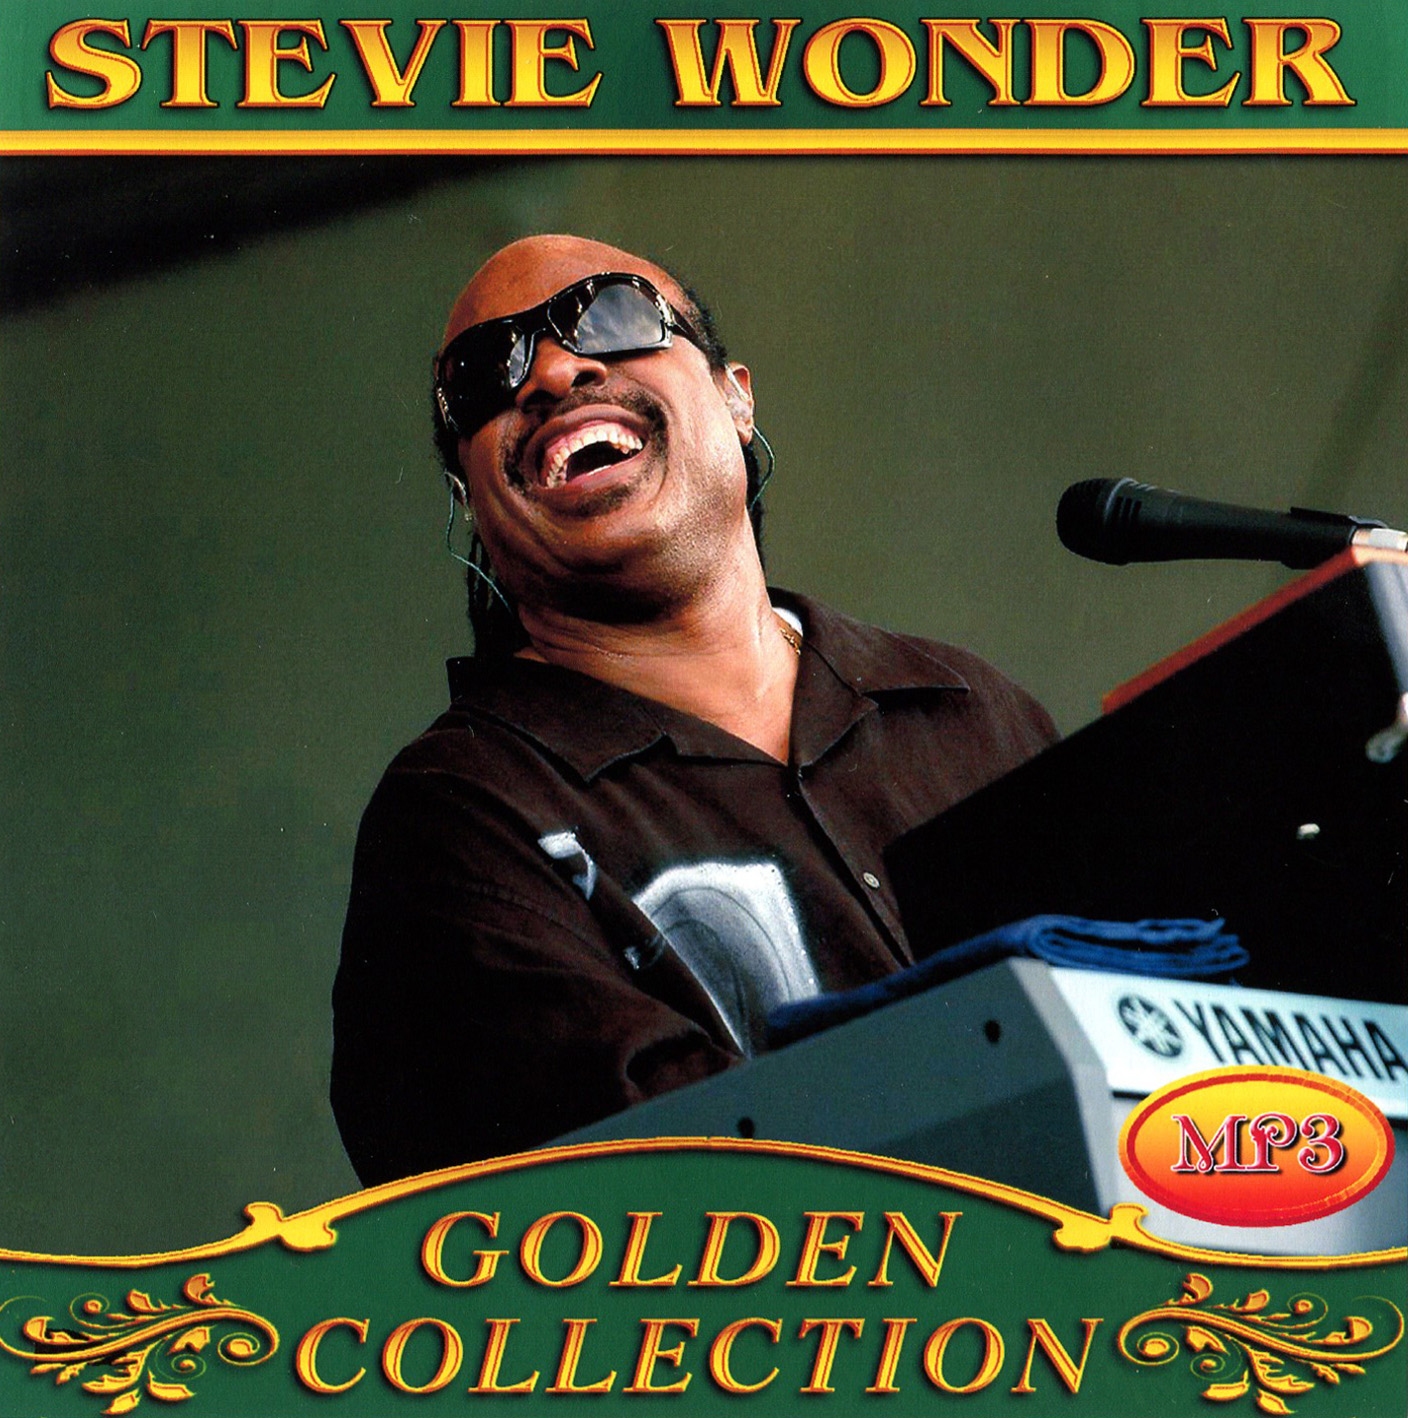 Stevie Wonder [mp3]